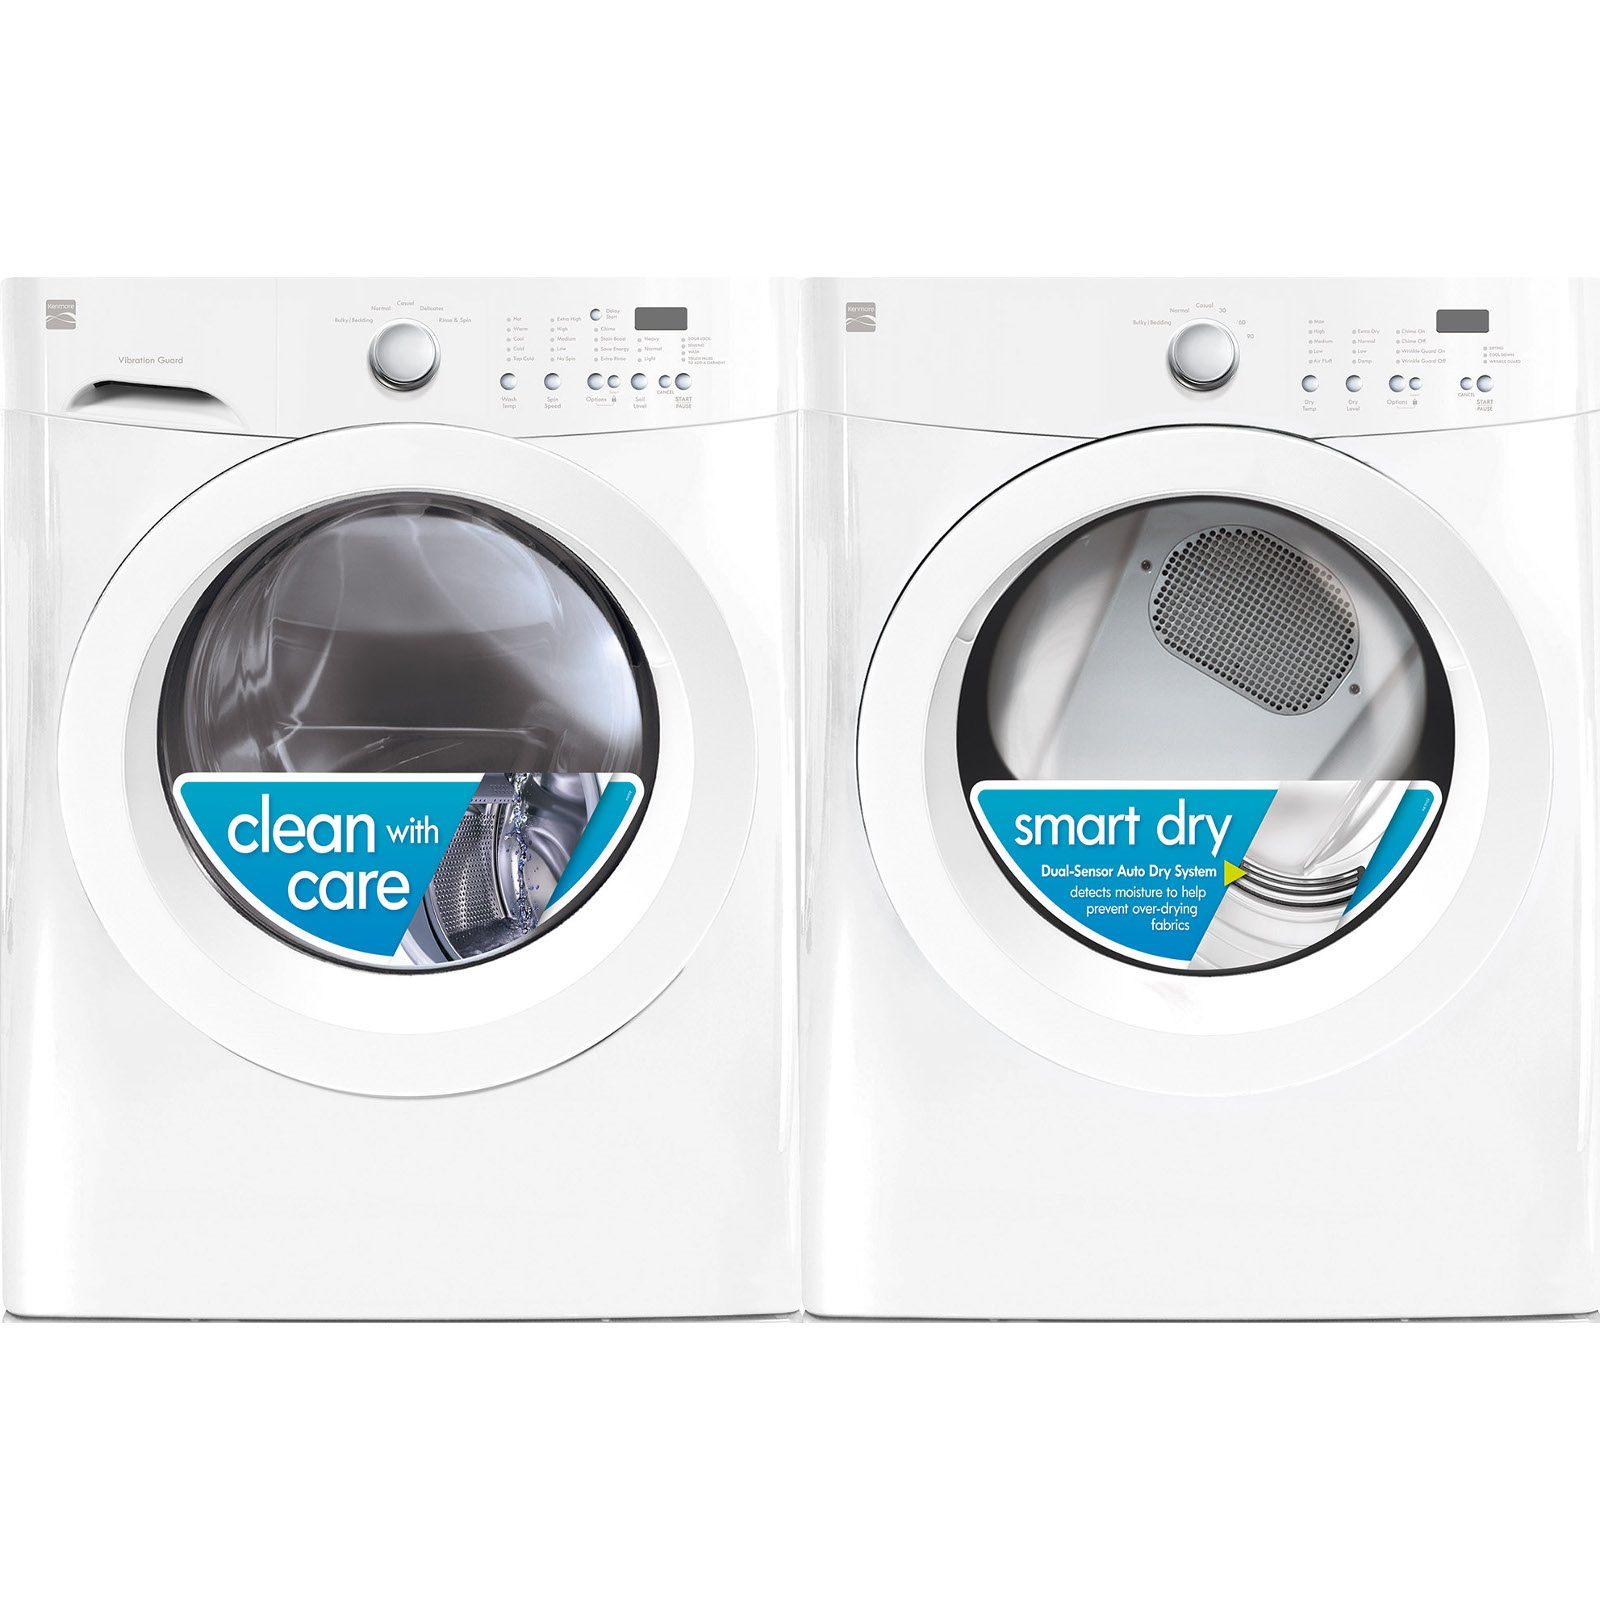 Kenmore 3.9 cu. ft. Front-Load Washer & 7.0 cu. ft. Electric Dryer - White